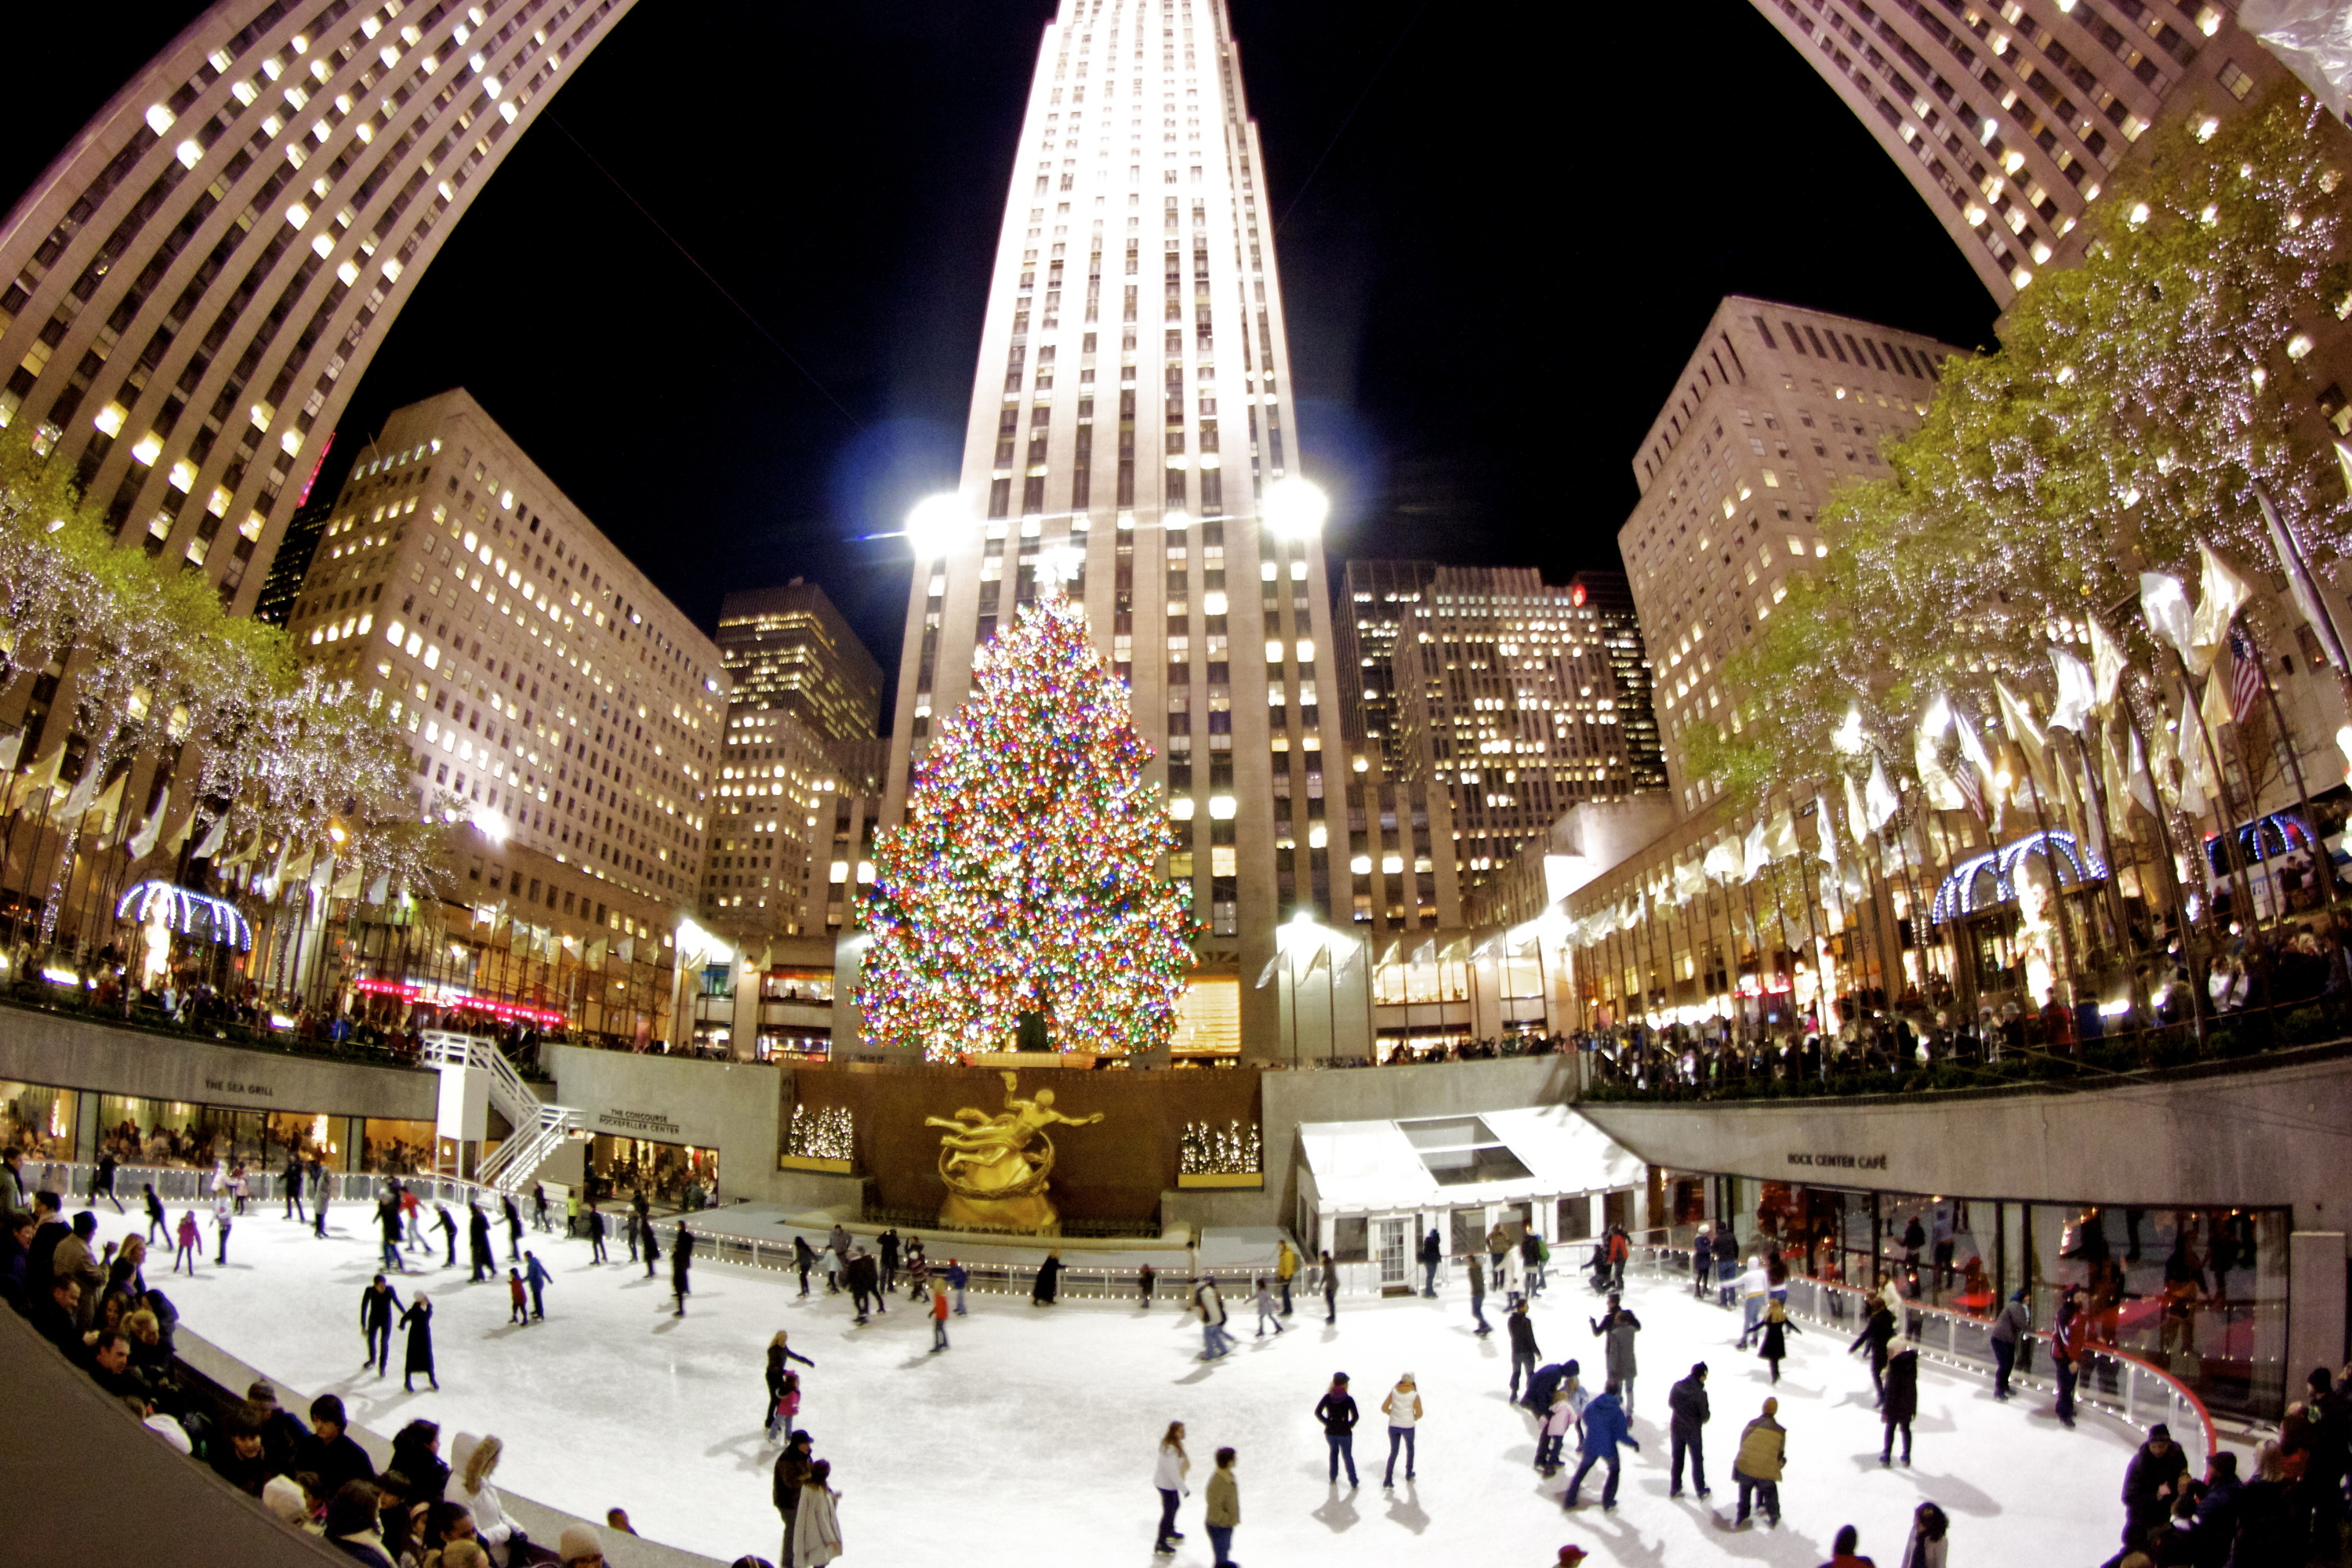 The Rink at Rockefeller Center guide